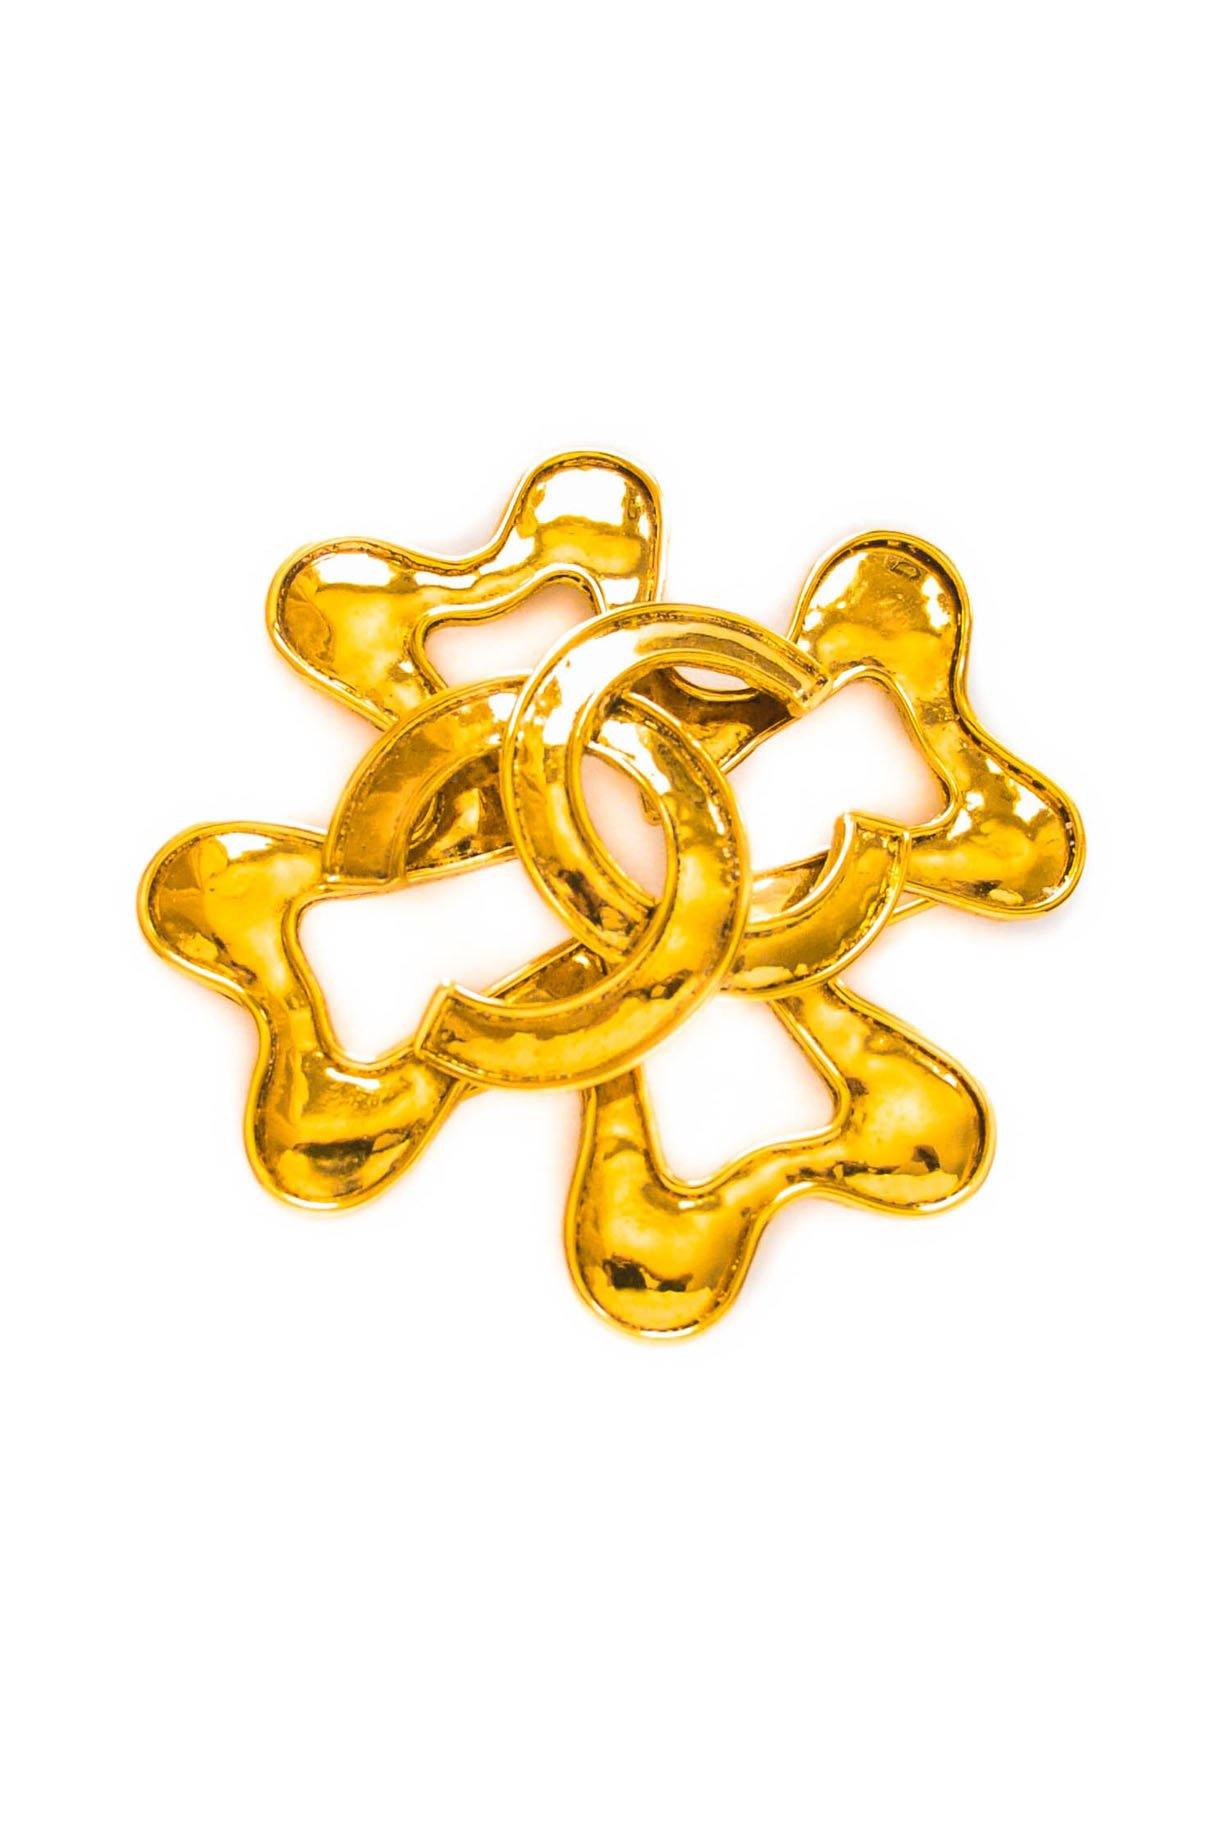 Vintage Chanel CC Jumbo Clover Brooch from Sweet and Spark